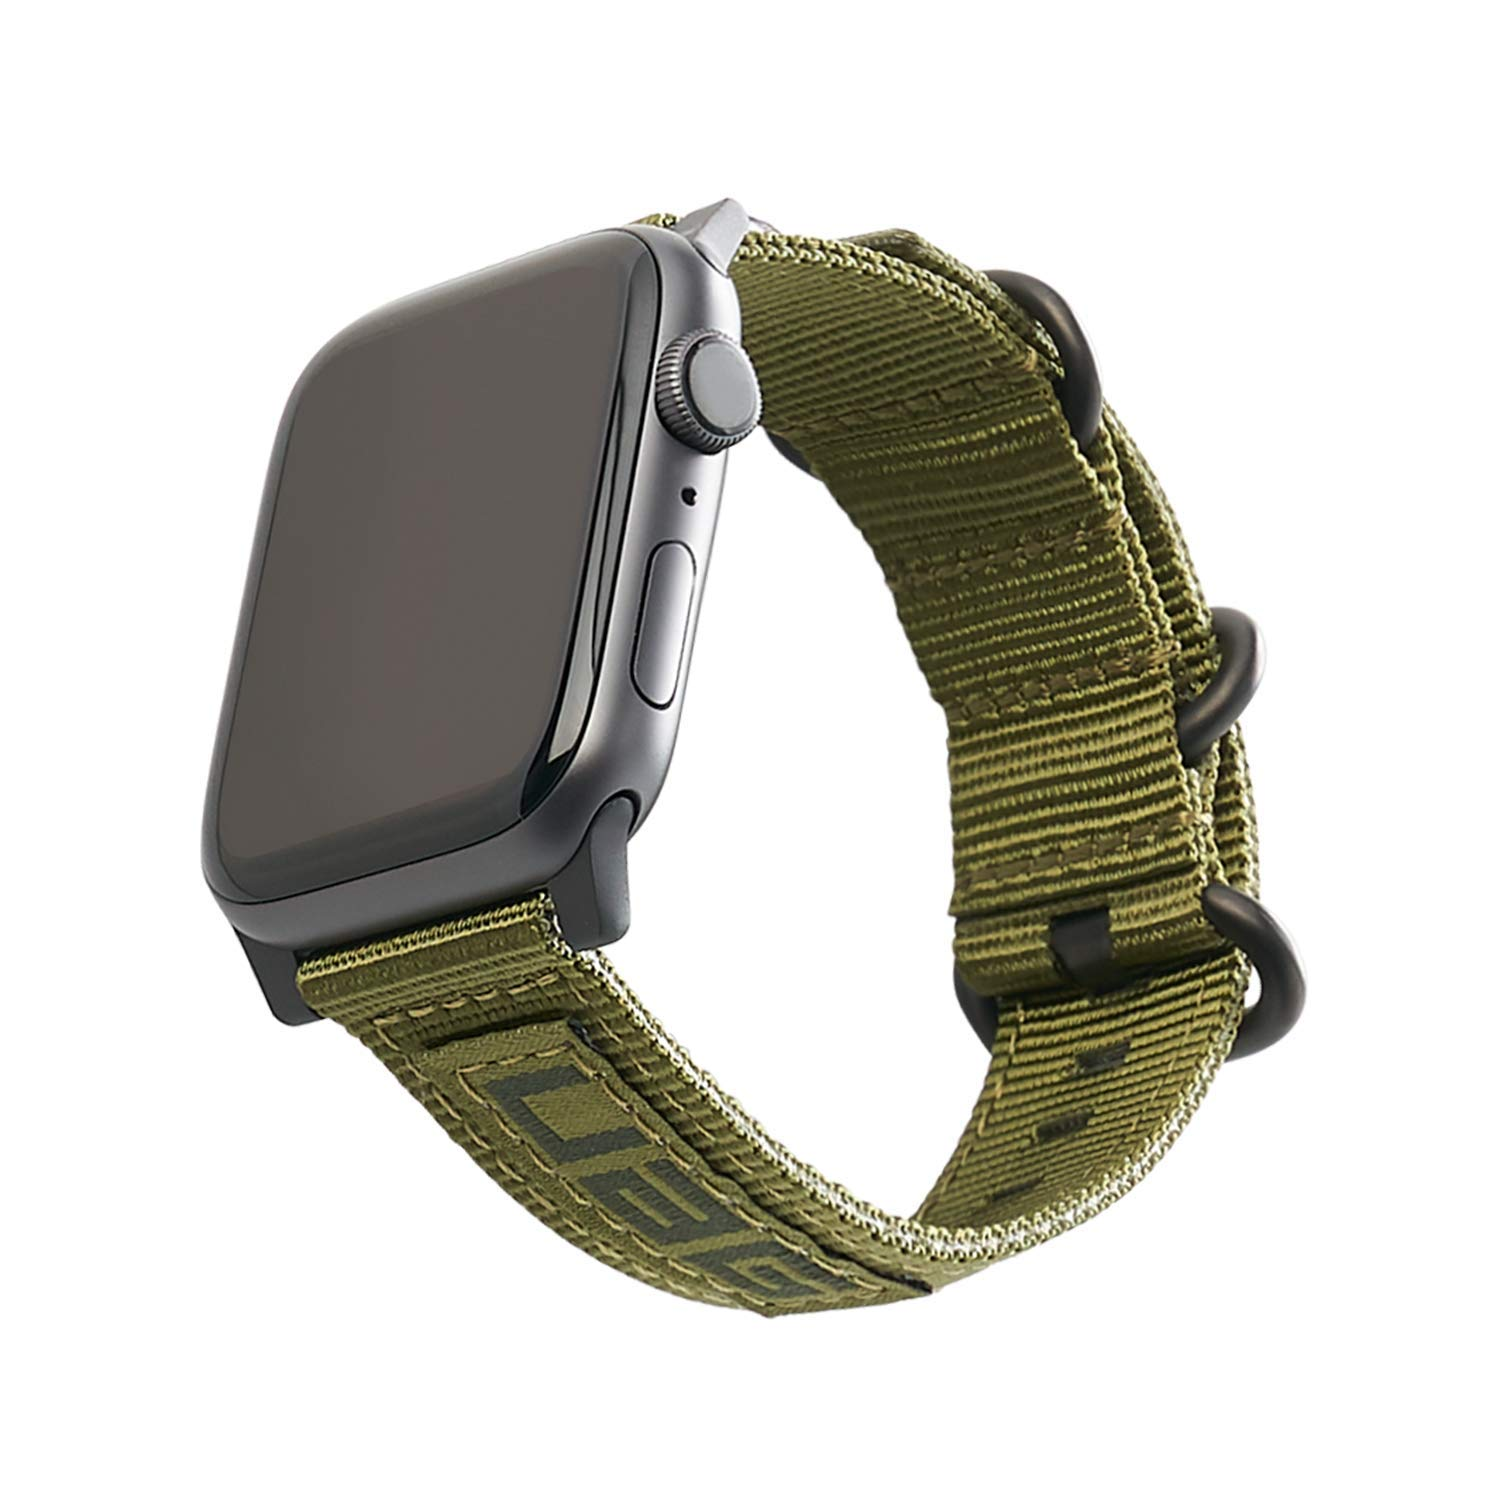 URBAN ARMOR GEAR UAG Compatible Apple Watch Band 44mm 42mm, Series 5/4/3/2/1, NATO Olive Drab by URBAN ARMOR GEAR